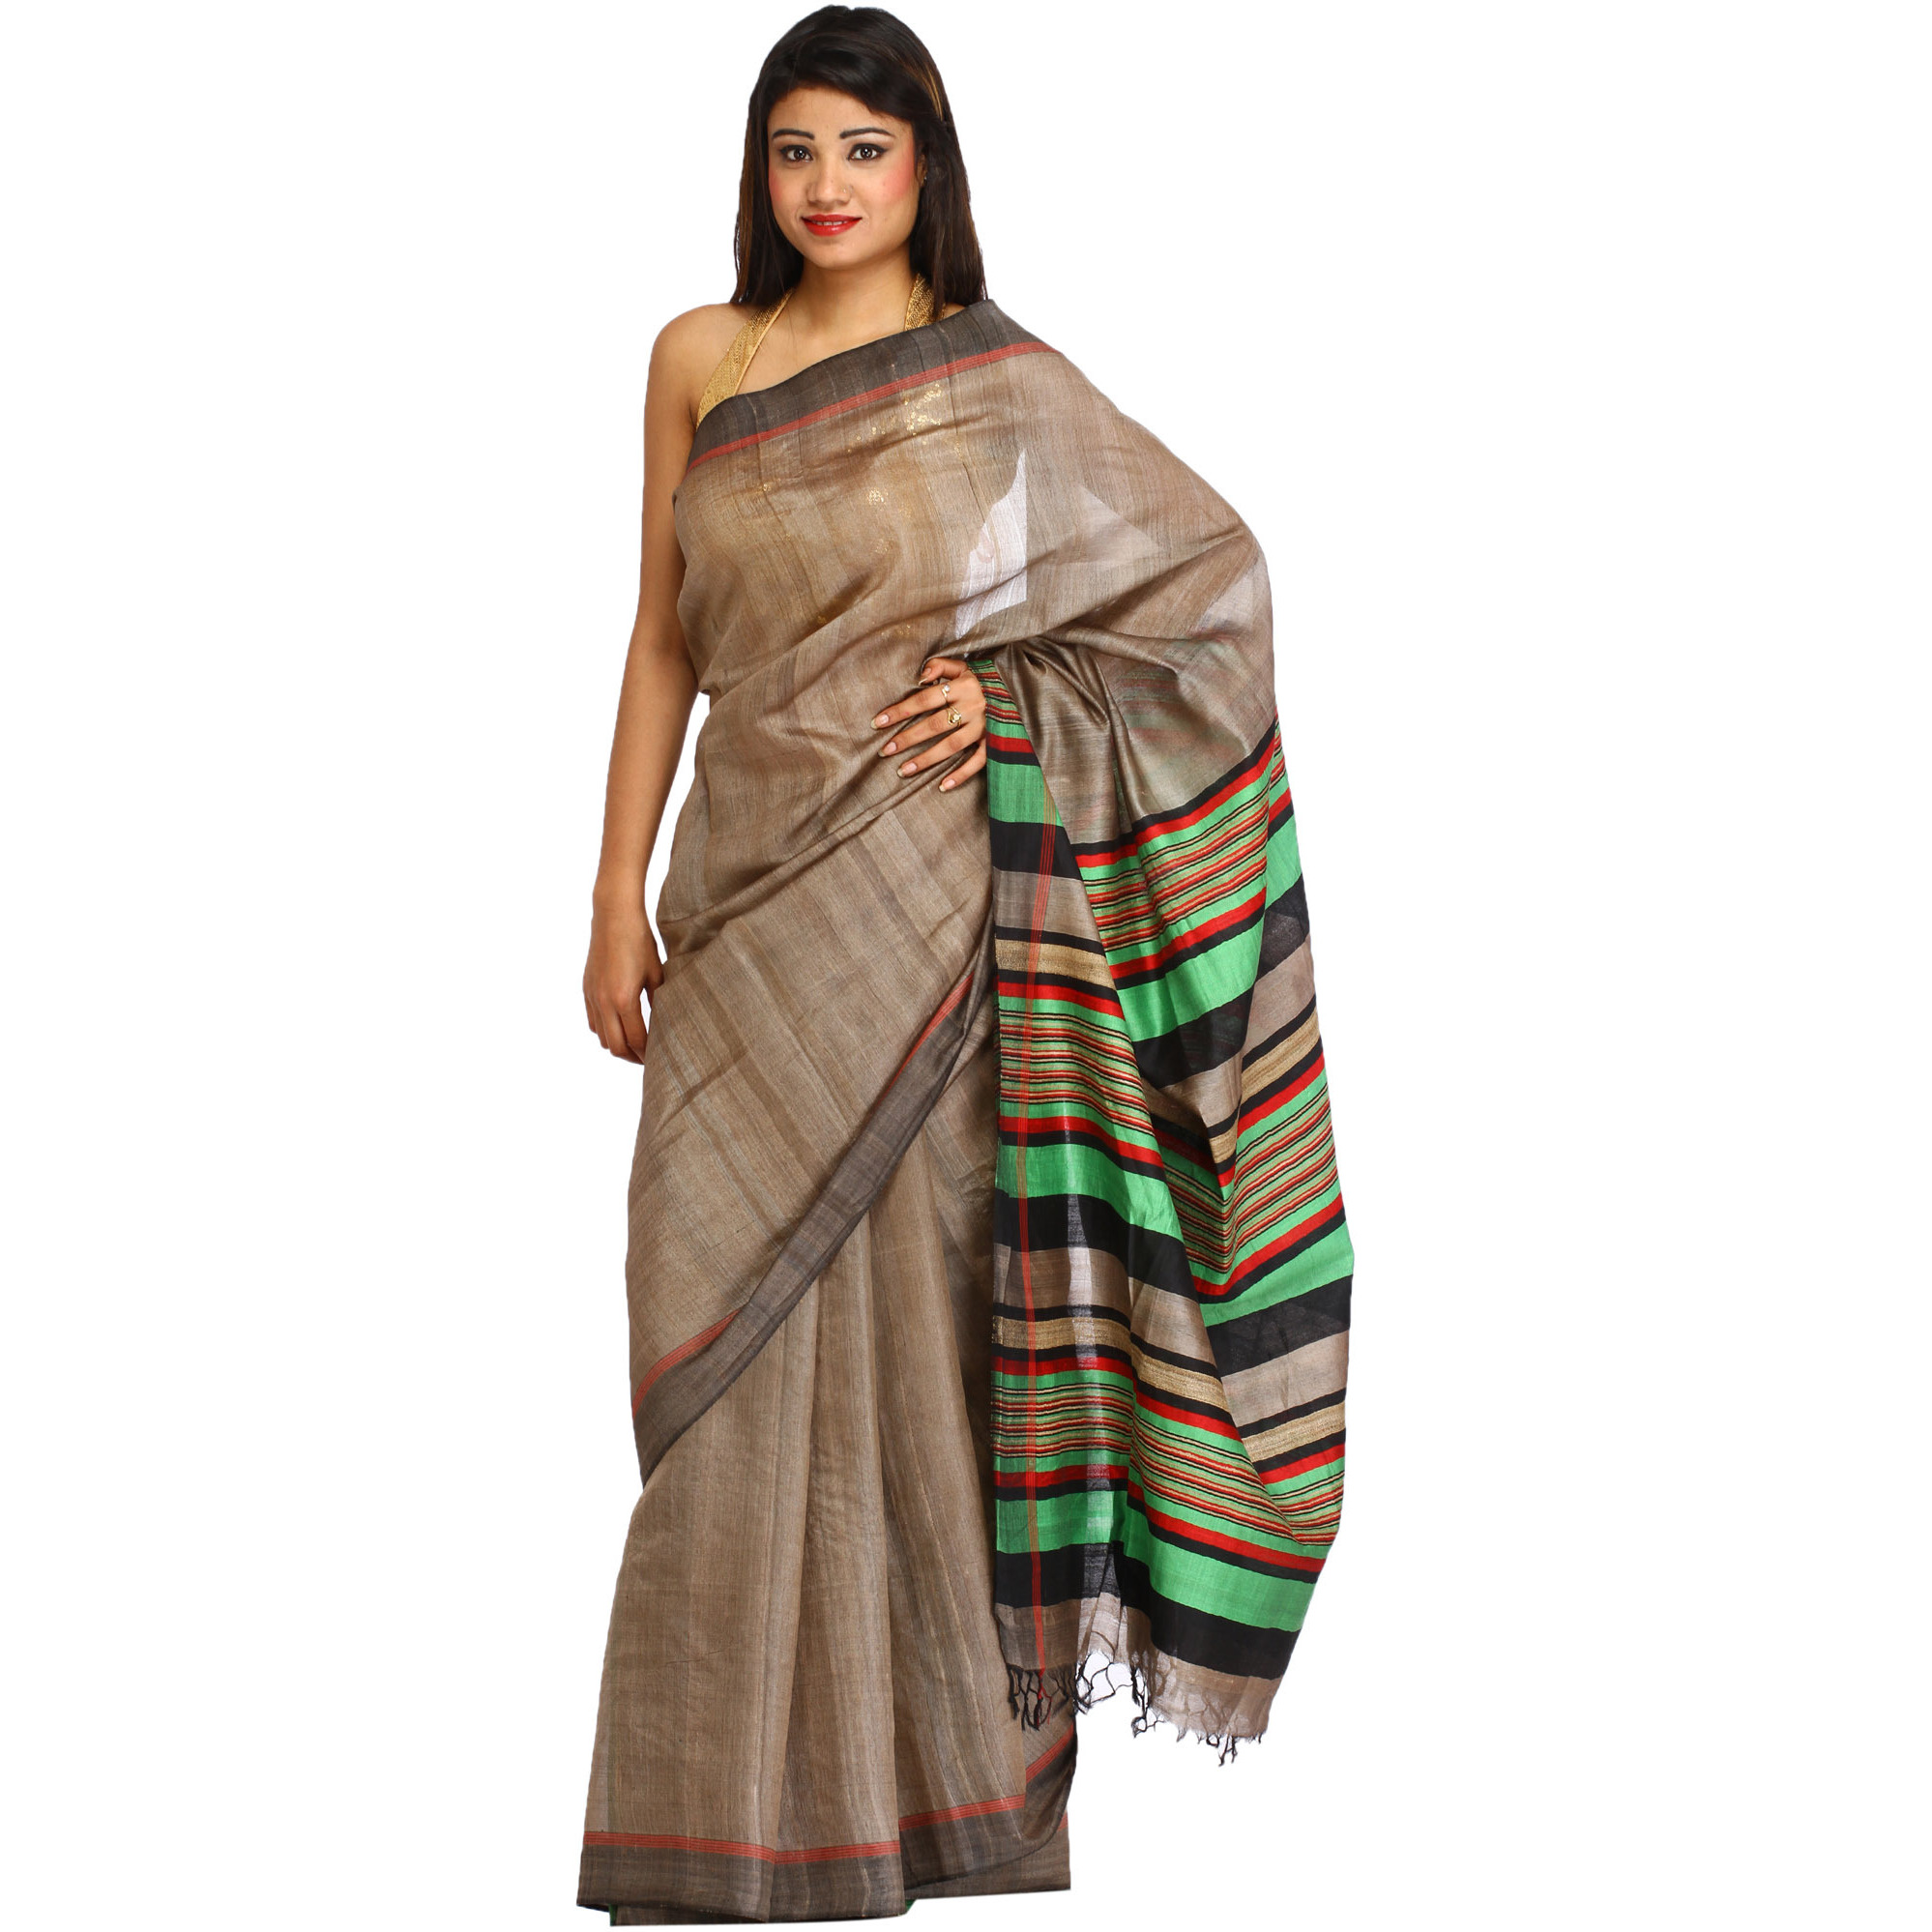 Taupe-Gray Plain Sari from Jharkhand with Woven Stripes on Pallu